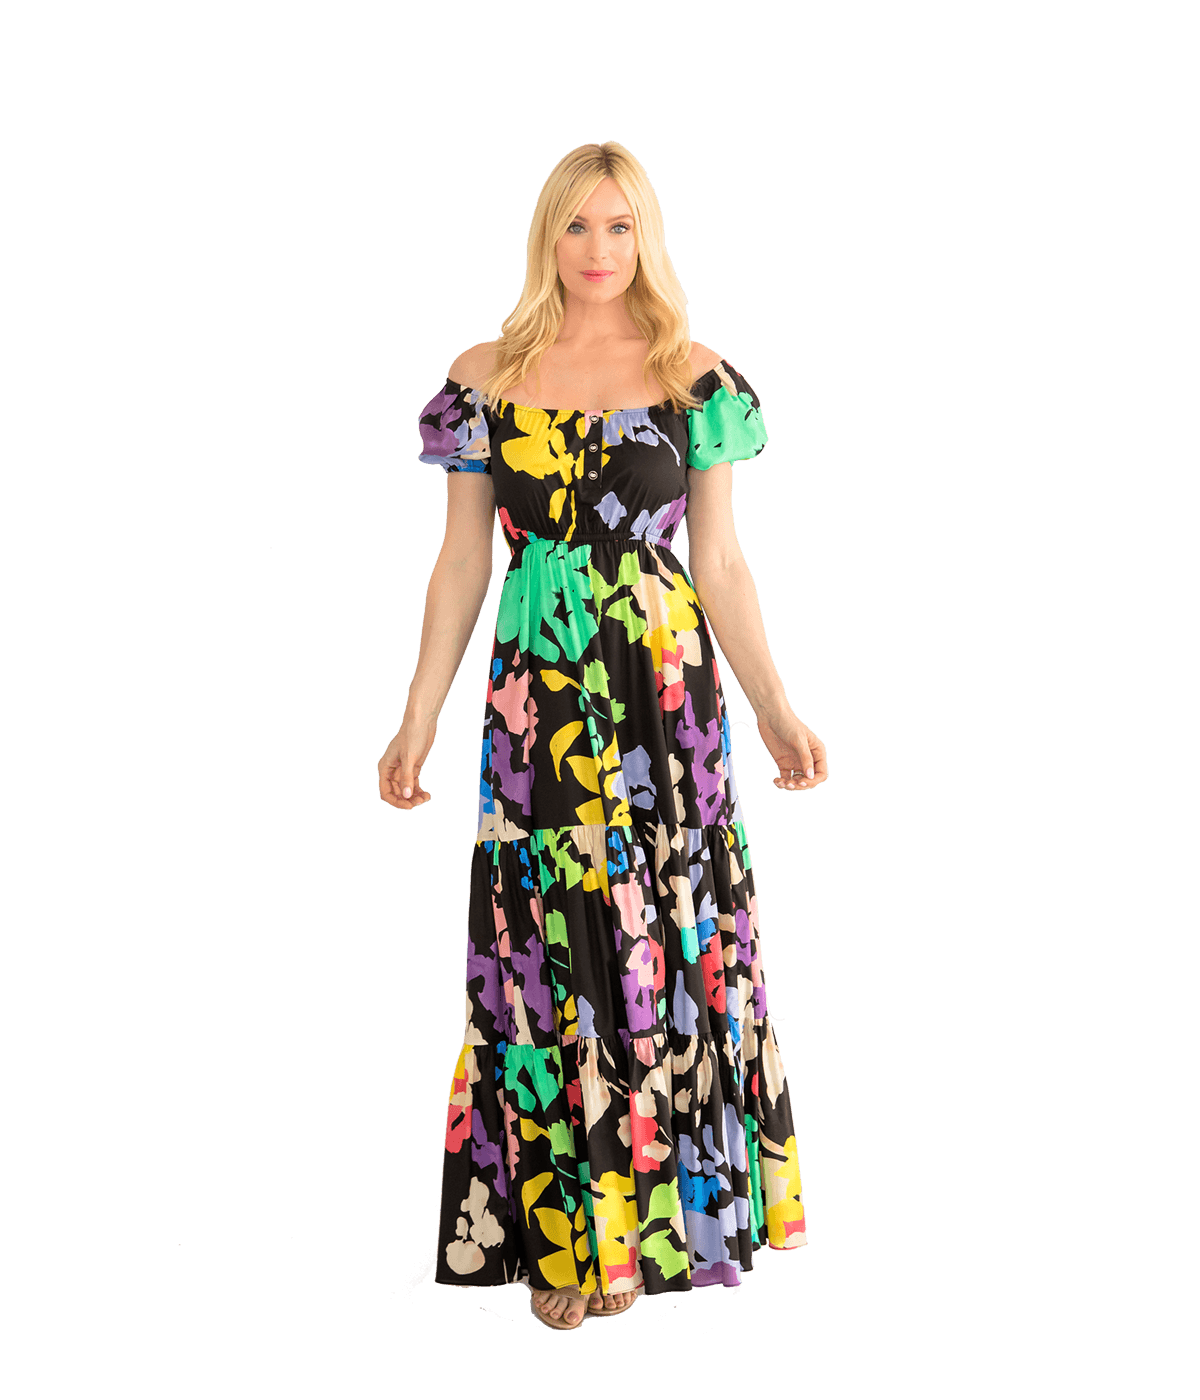 Bardot Maxi Dress - Lady Jetset